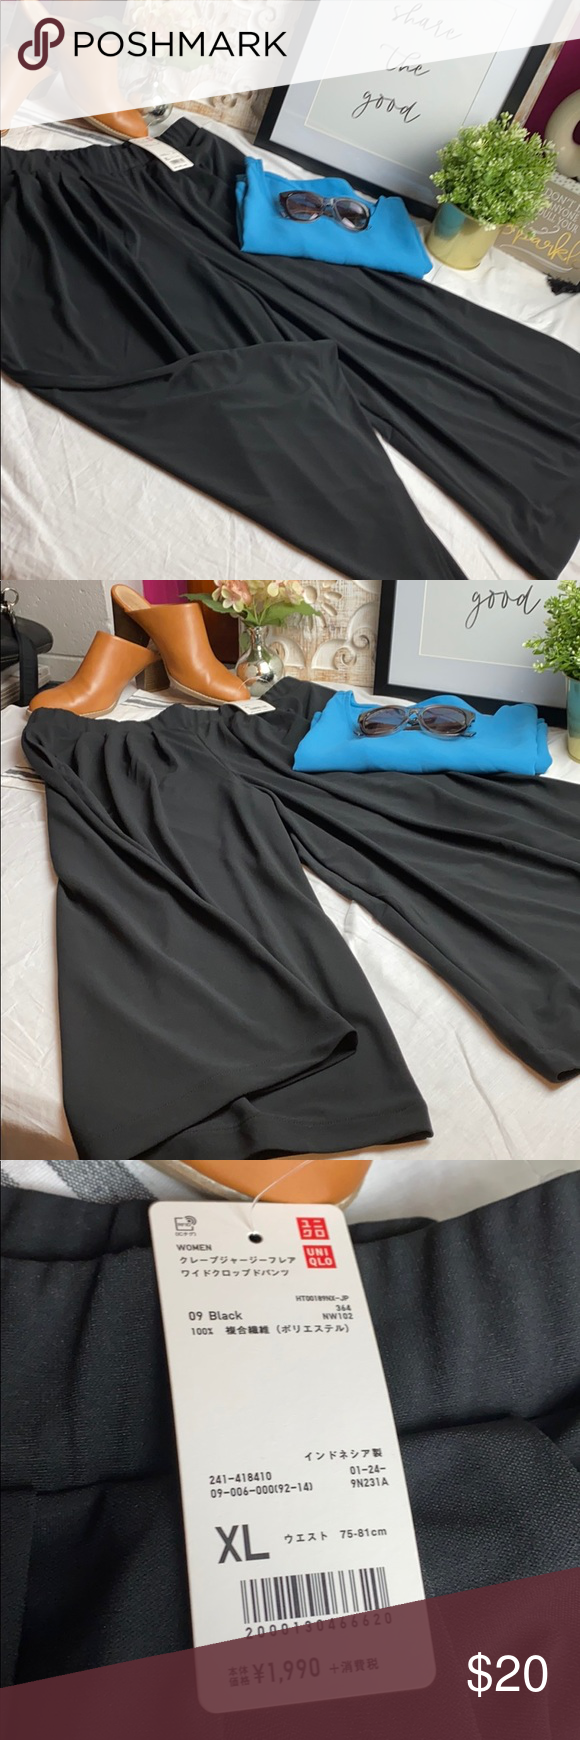 New black UNIGLO BRAND XL GAUCHOS! FROM TOKYO! This is